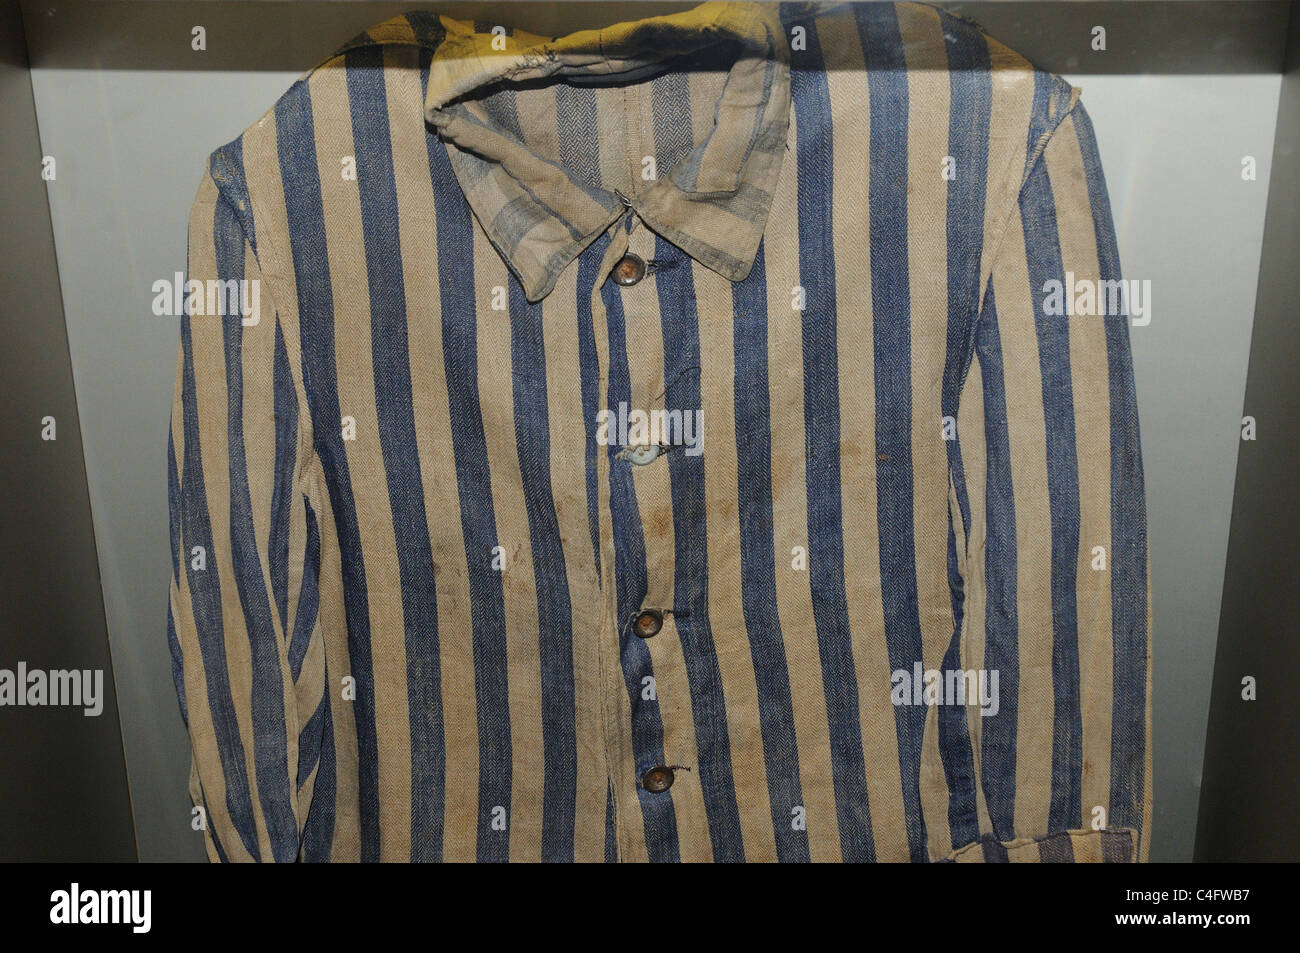 A striped shirt as worn by the Jews in concentration camps - Stock Image